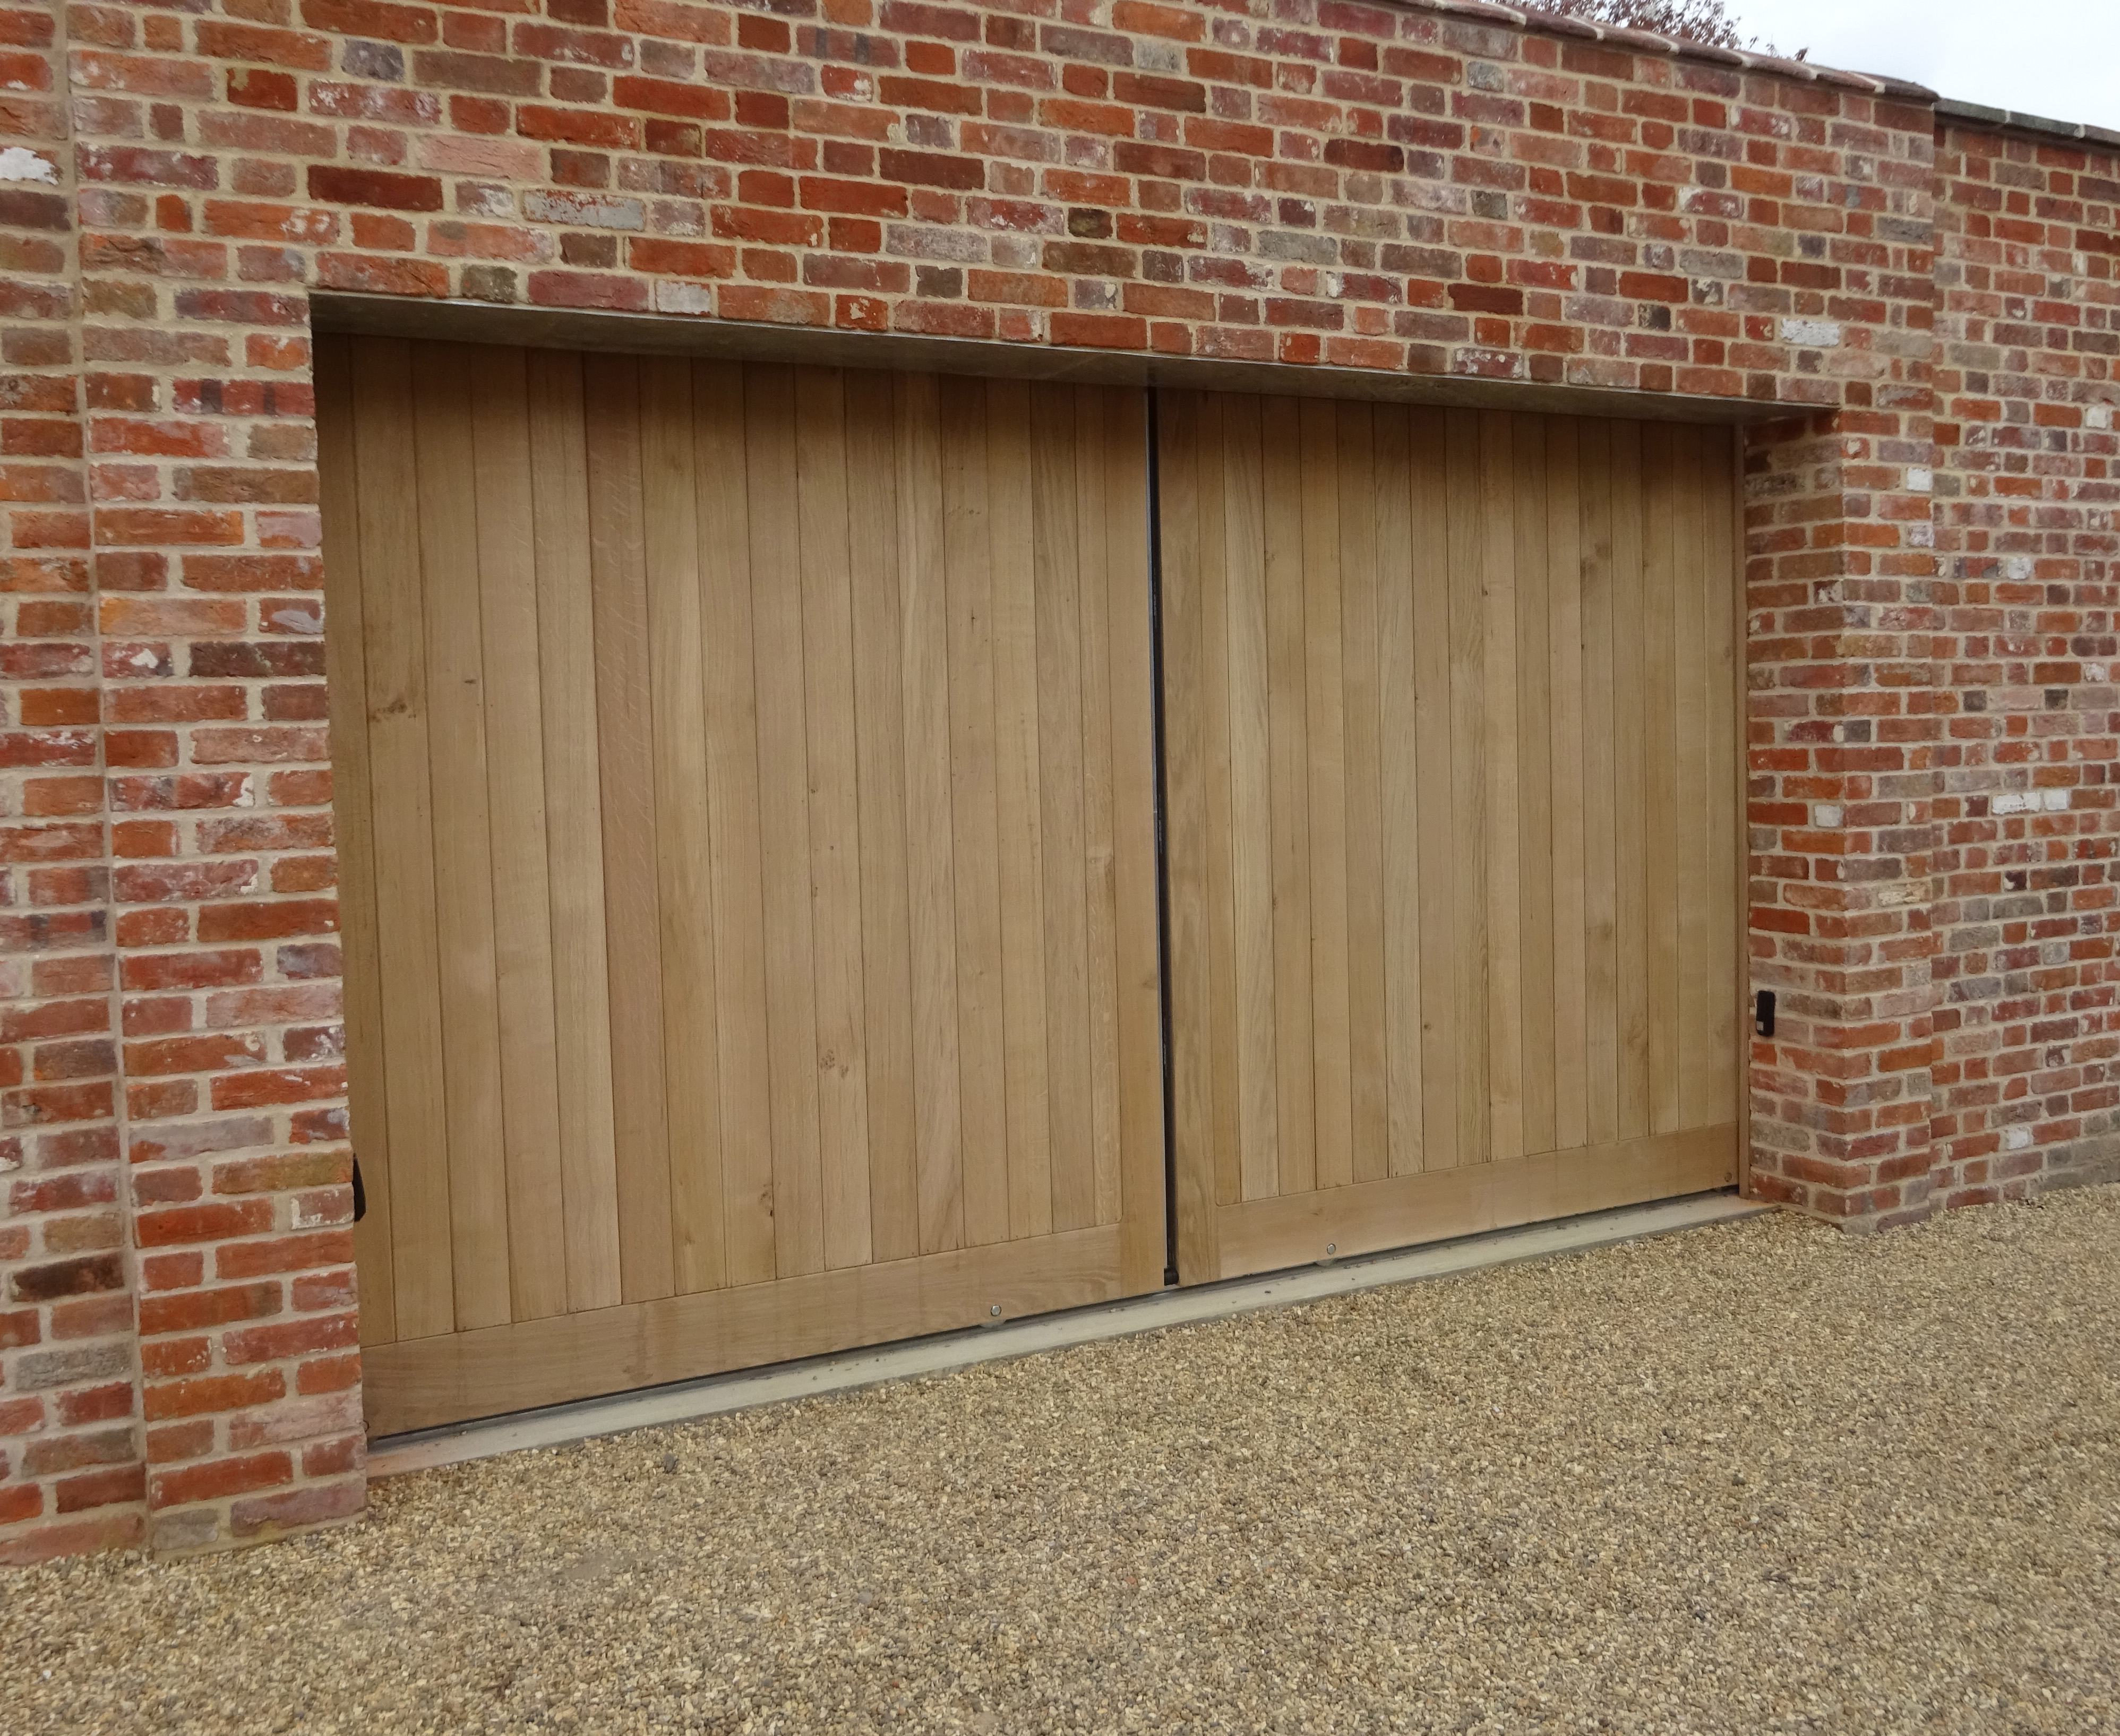 Hadleigh sliding gates in Oak